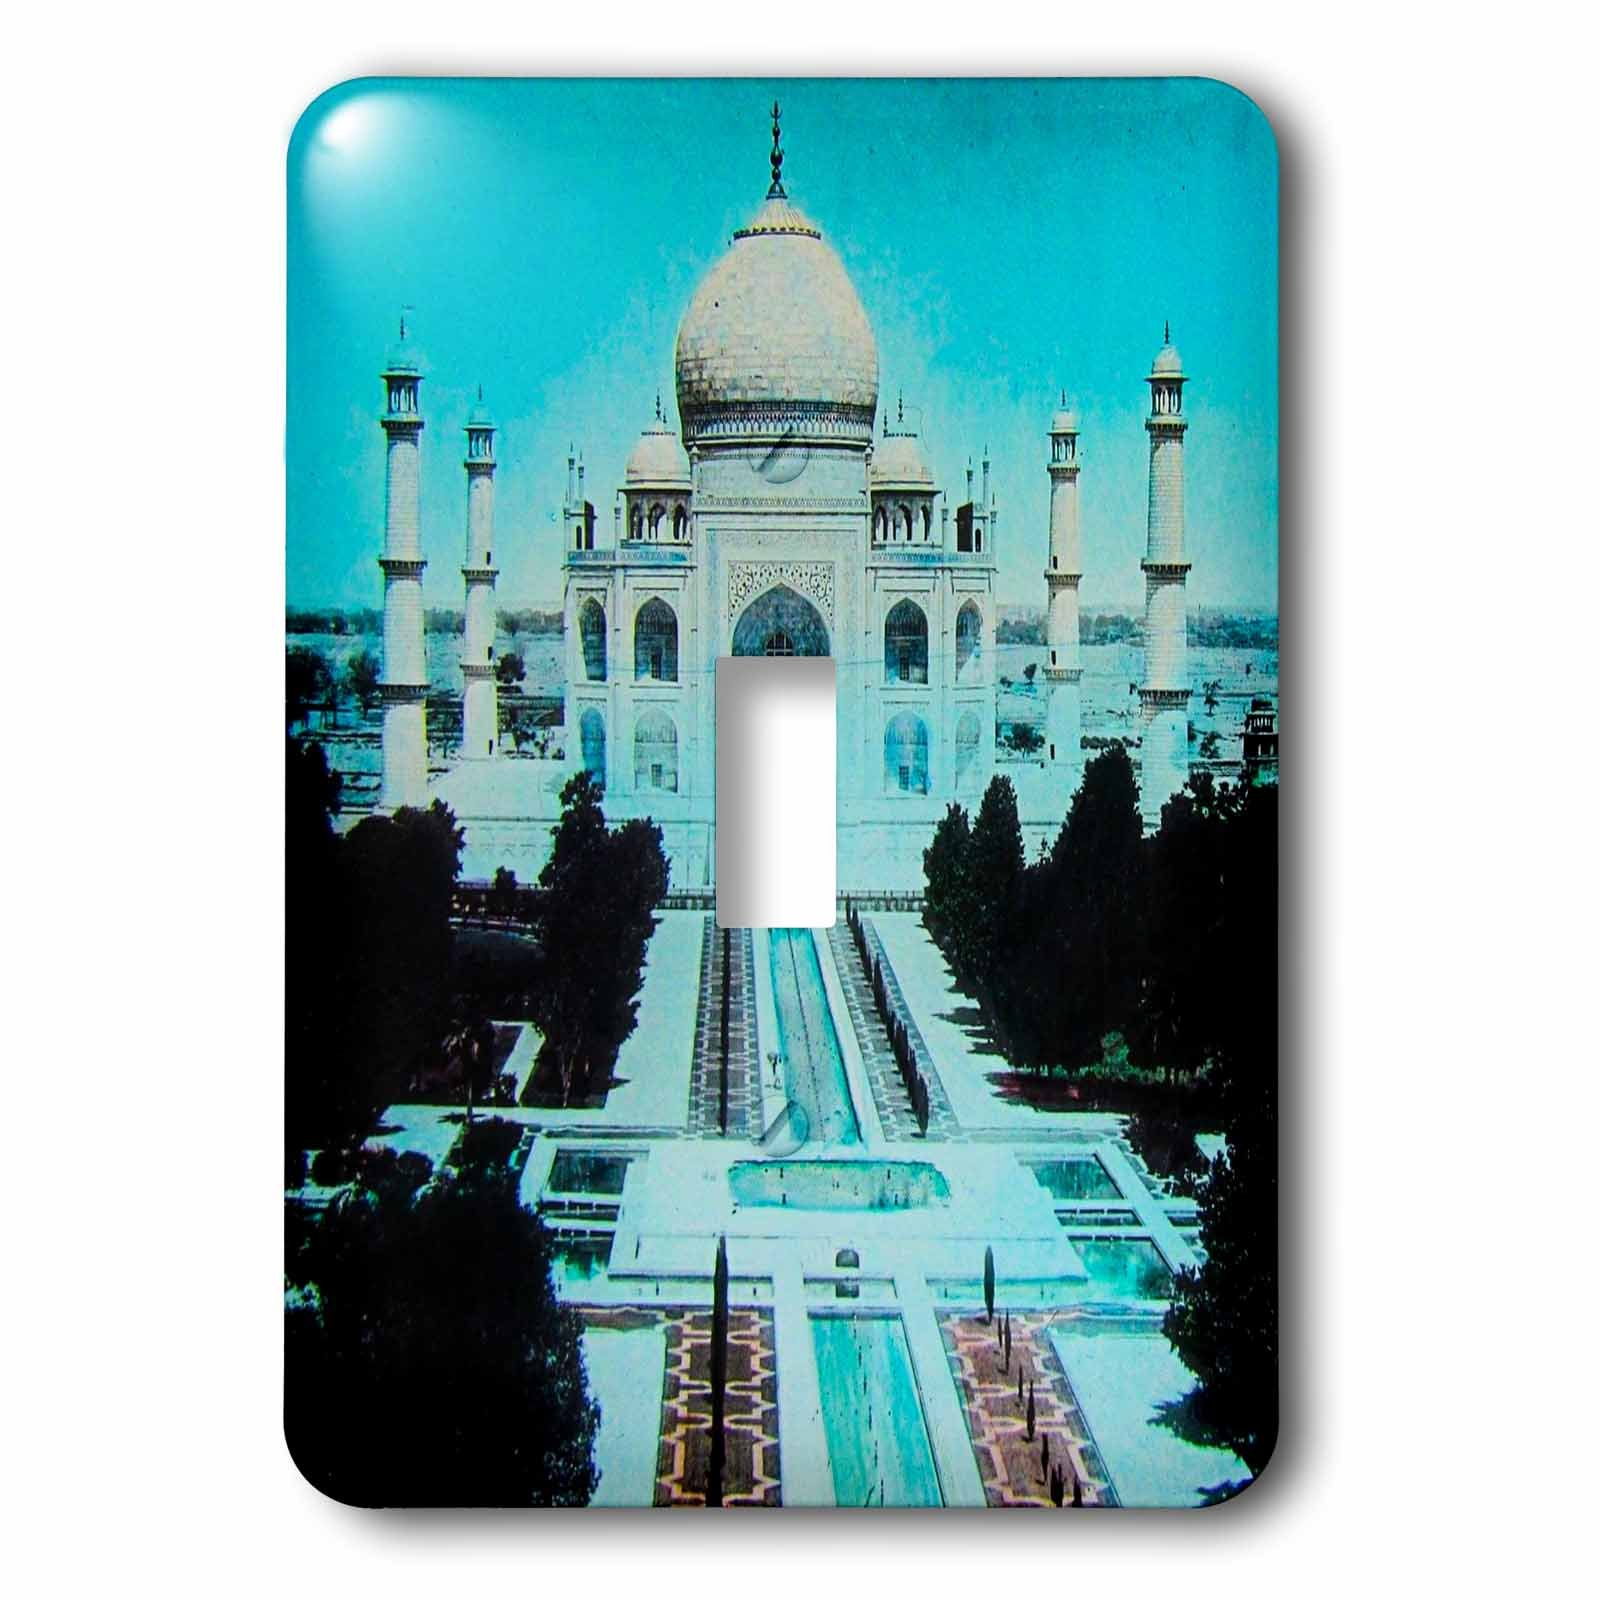 3dRose (lsp_246865_1) Single Toggle Switch (1) Vintage India Exterior of the Taj Mahal No. 1 1910 Hand Colored